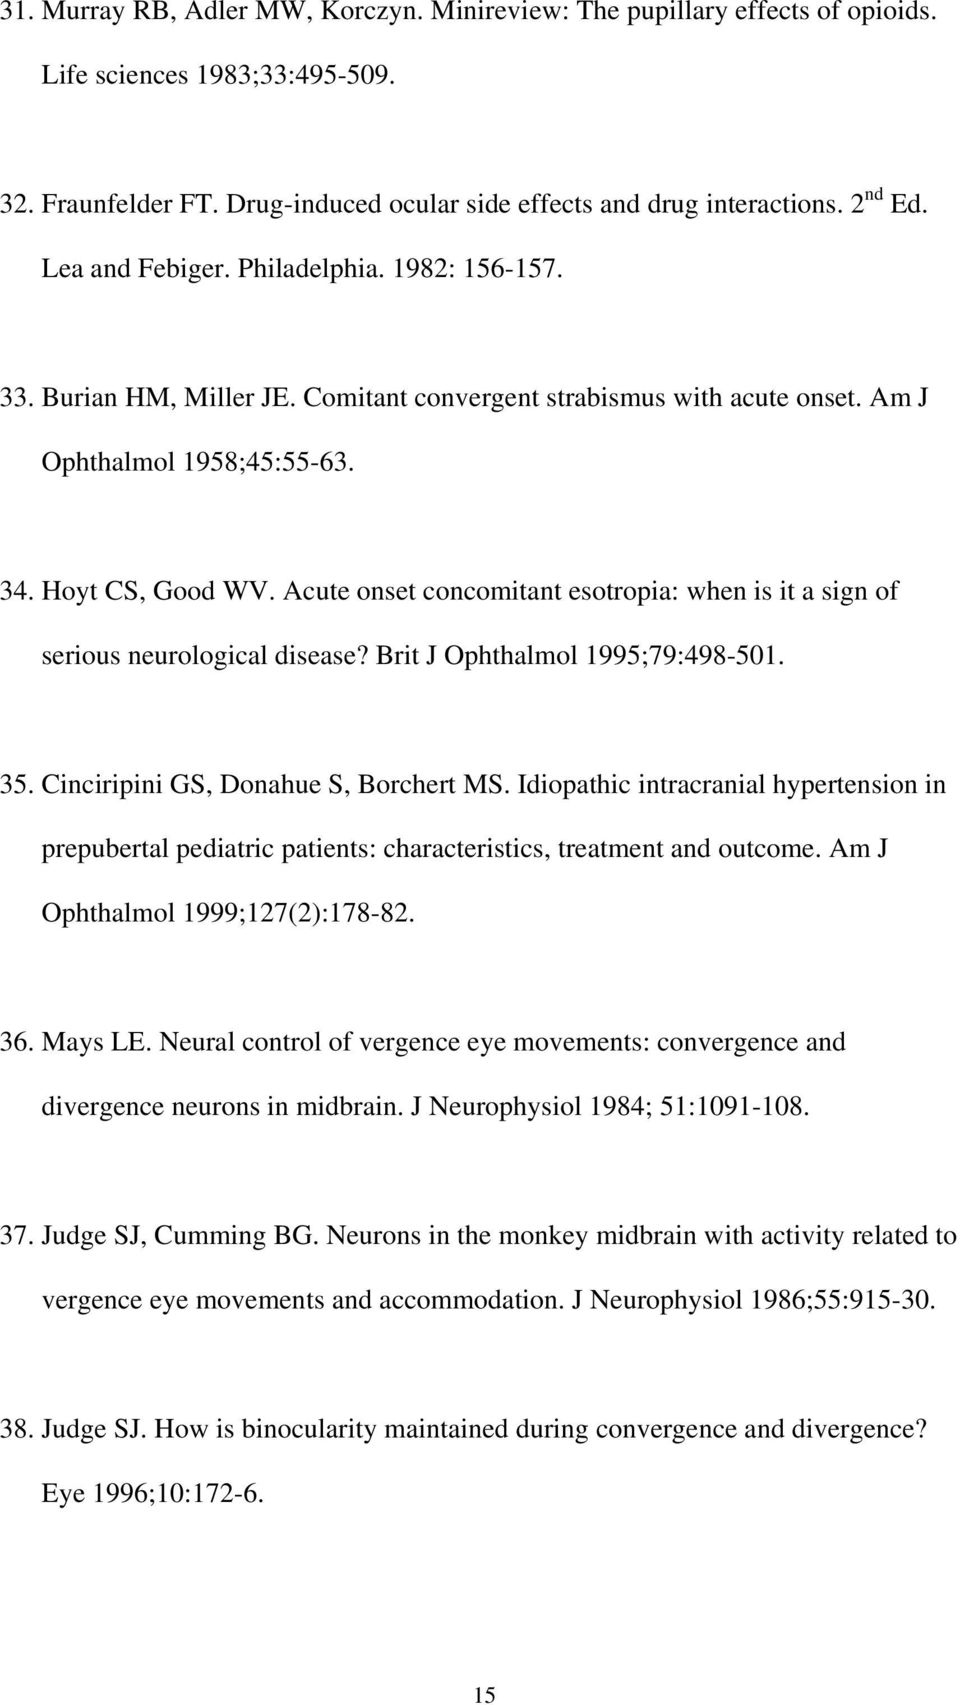 Acute onset concomitant esotropia: when is it a sign of serious neurological disease? Brit J Ophthalmol 1995;79:498-501. 35. Cinciripini GS, Donahue S, Borchert MS.